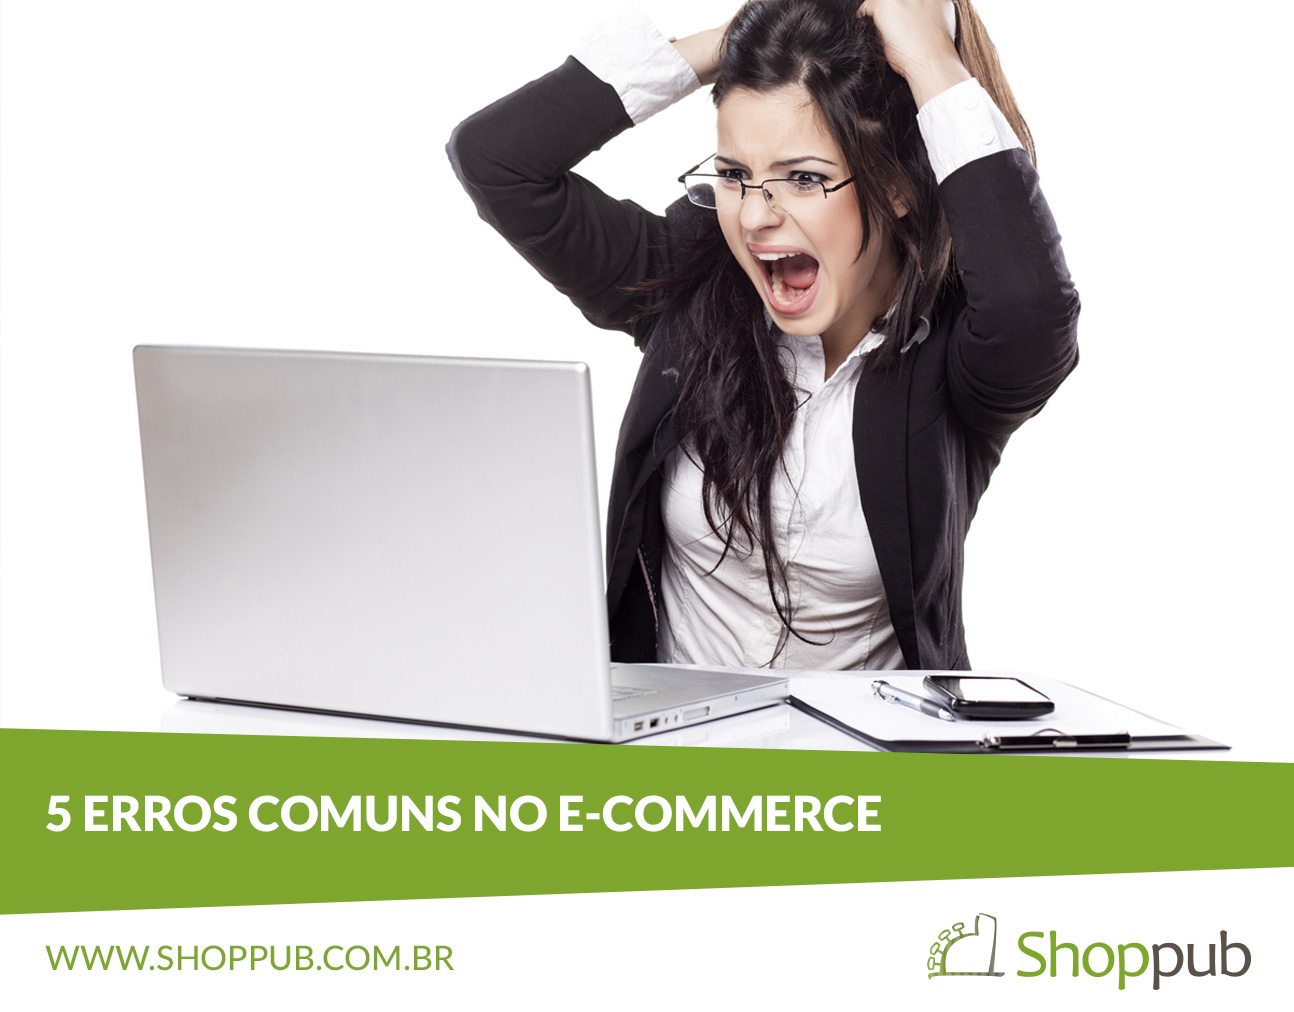 5 Erros comuns no e-commerce